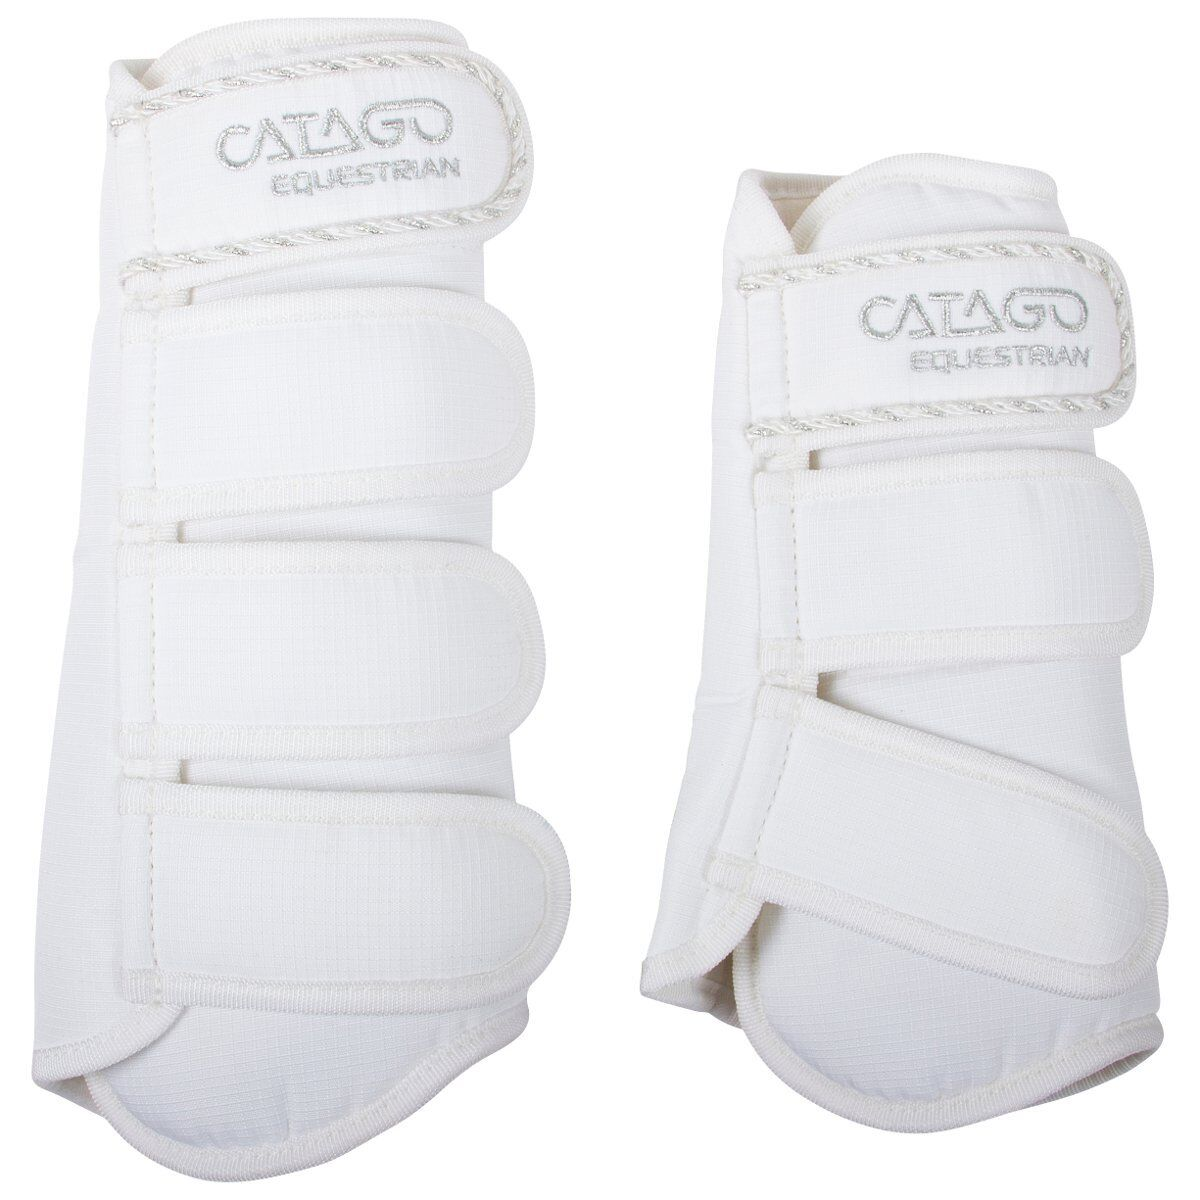 Catago Gaiters Diamond - White - Thgoldughbred Horse Equitation Leg Predection